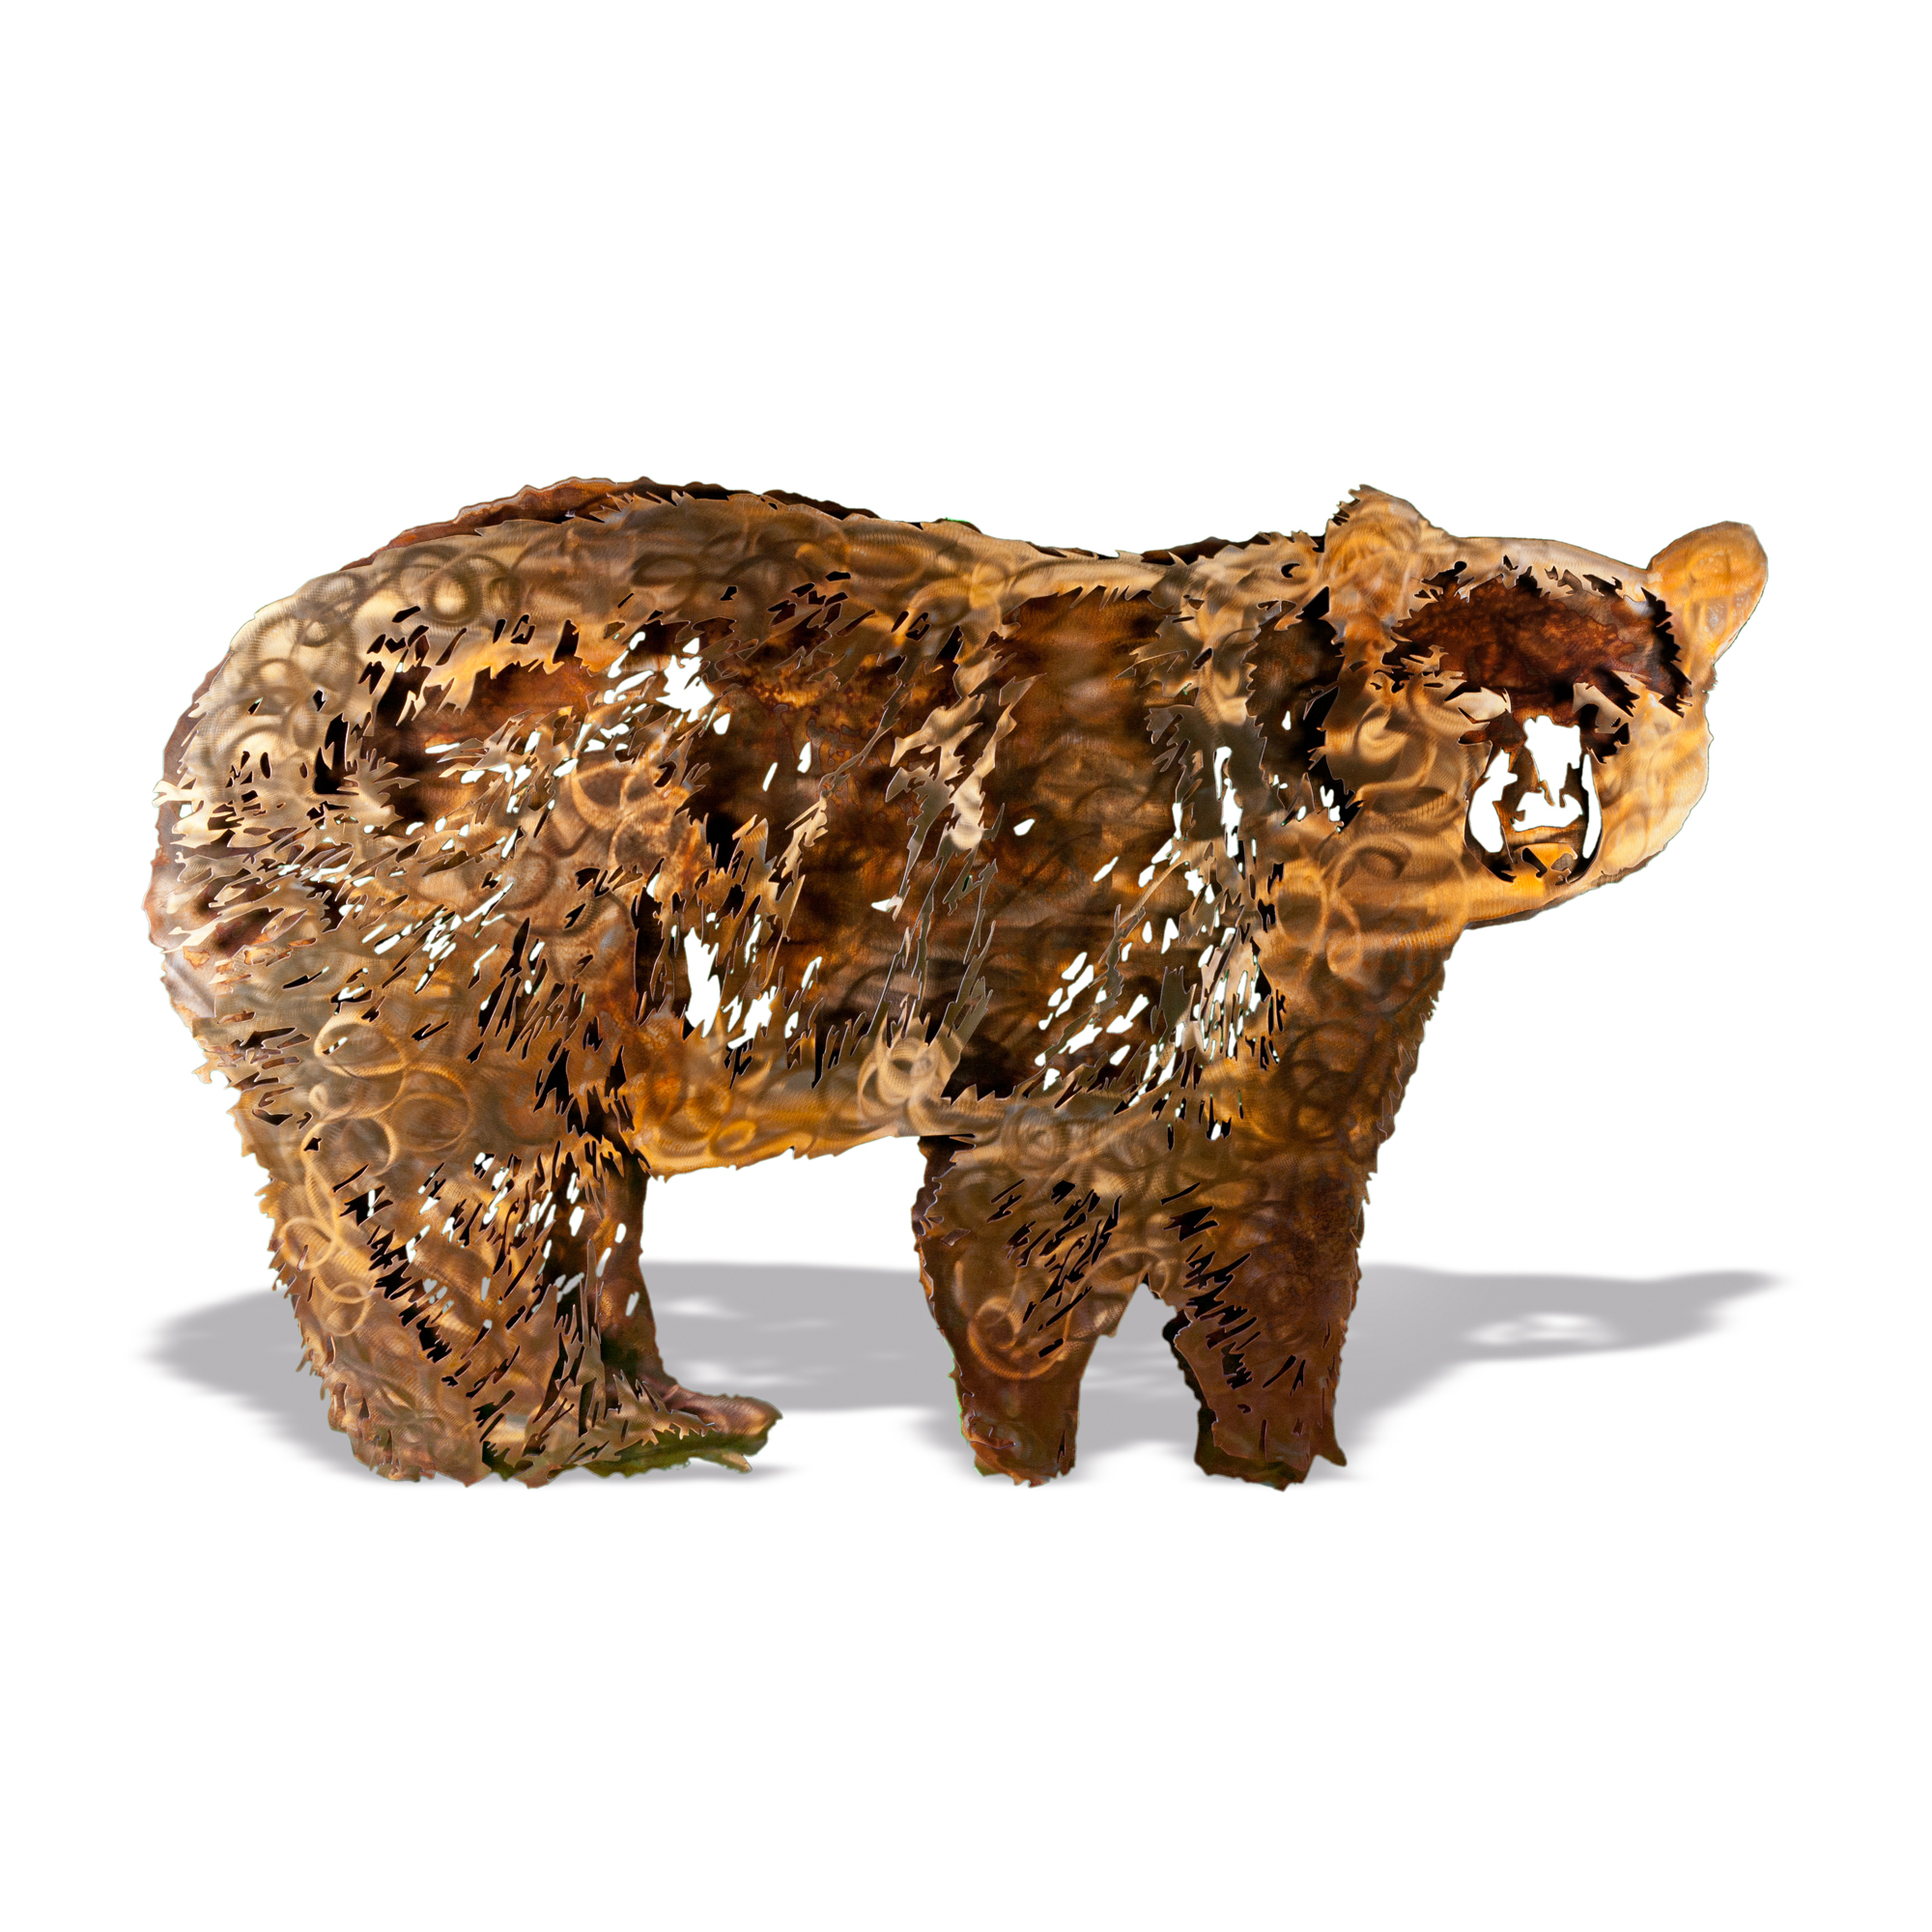 Adult Black Bear - Contemporary Large Stake Metal Artwork with Brown Patina Finish Instructions